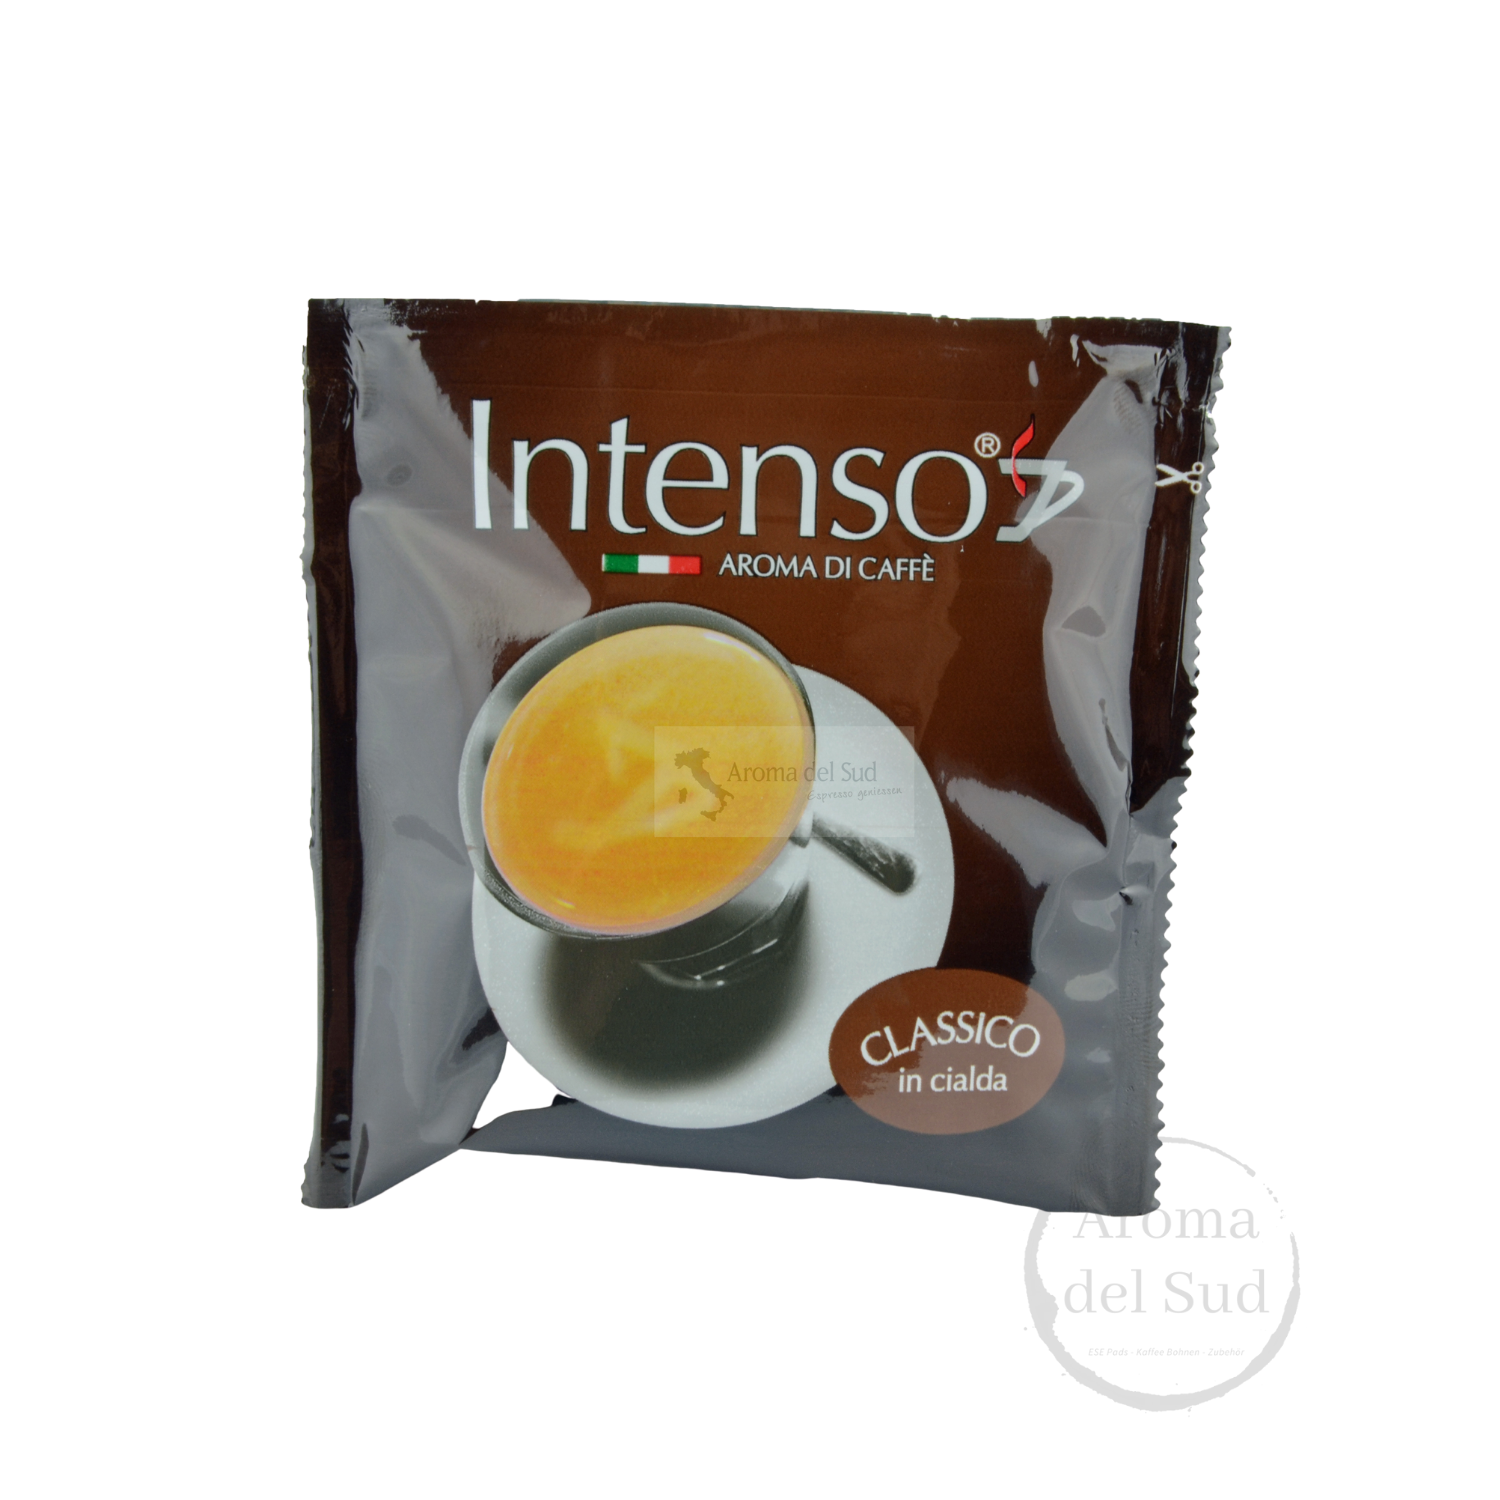 Intenso Classico 150 ESE Pads